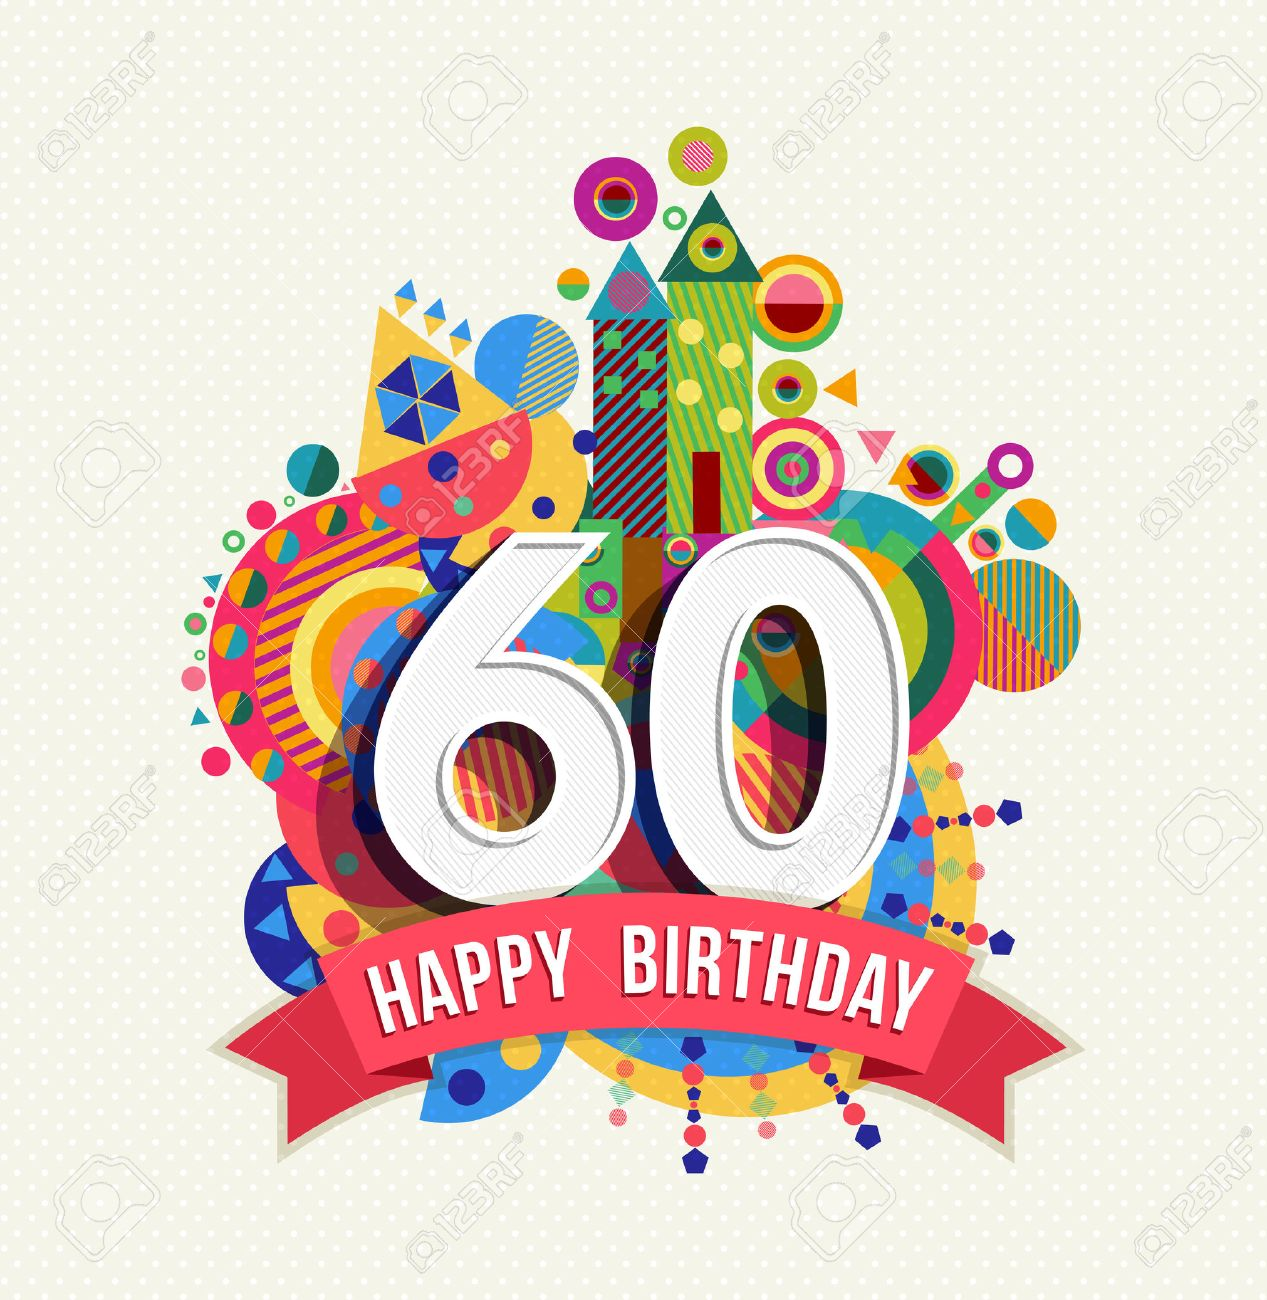 Happy Birthday sixty 60 year, fun celebration greeting card with number,  text label and